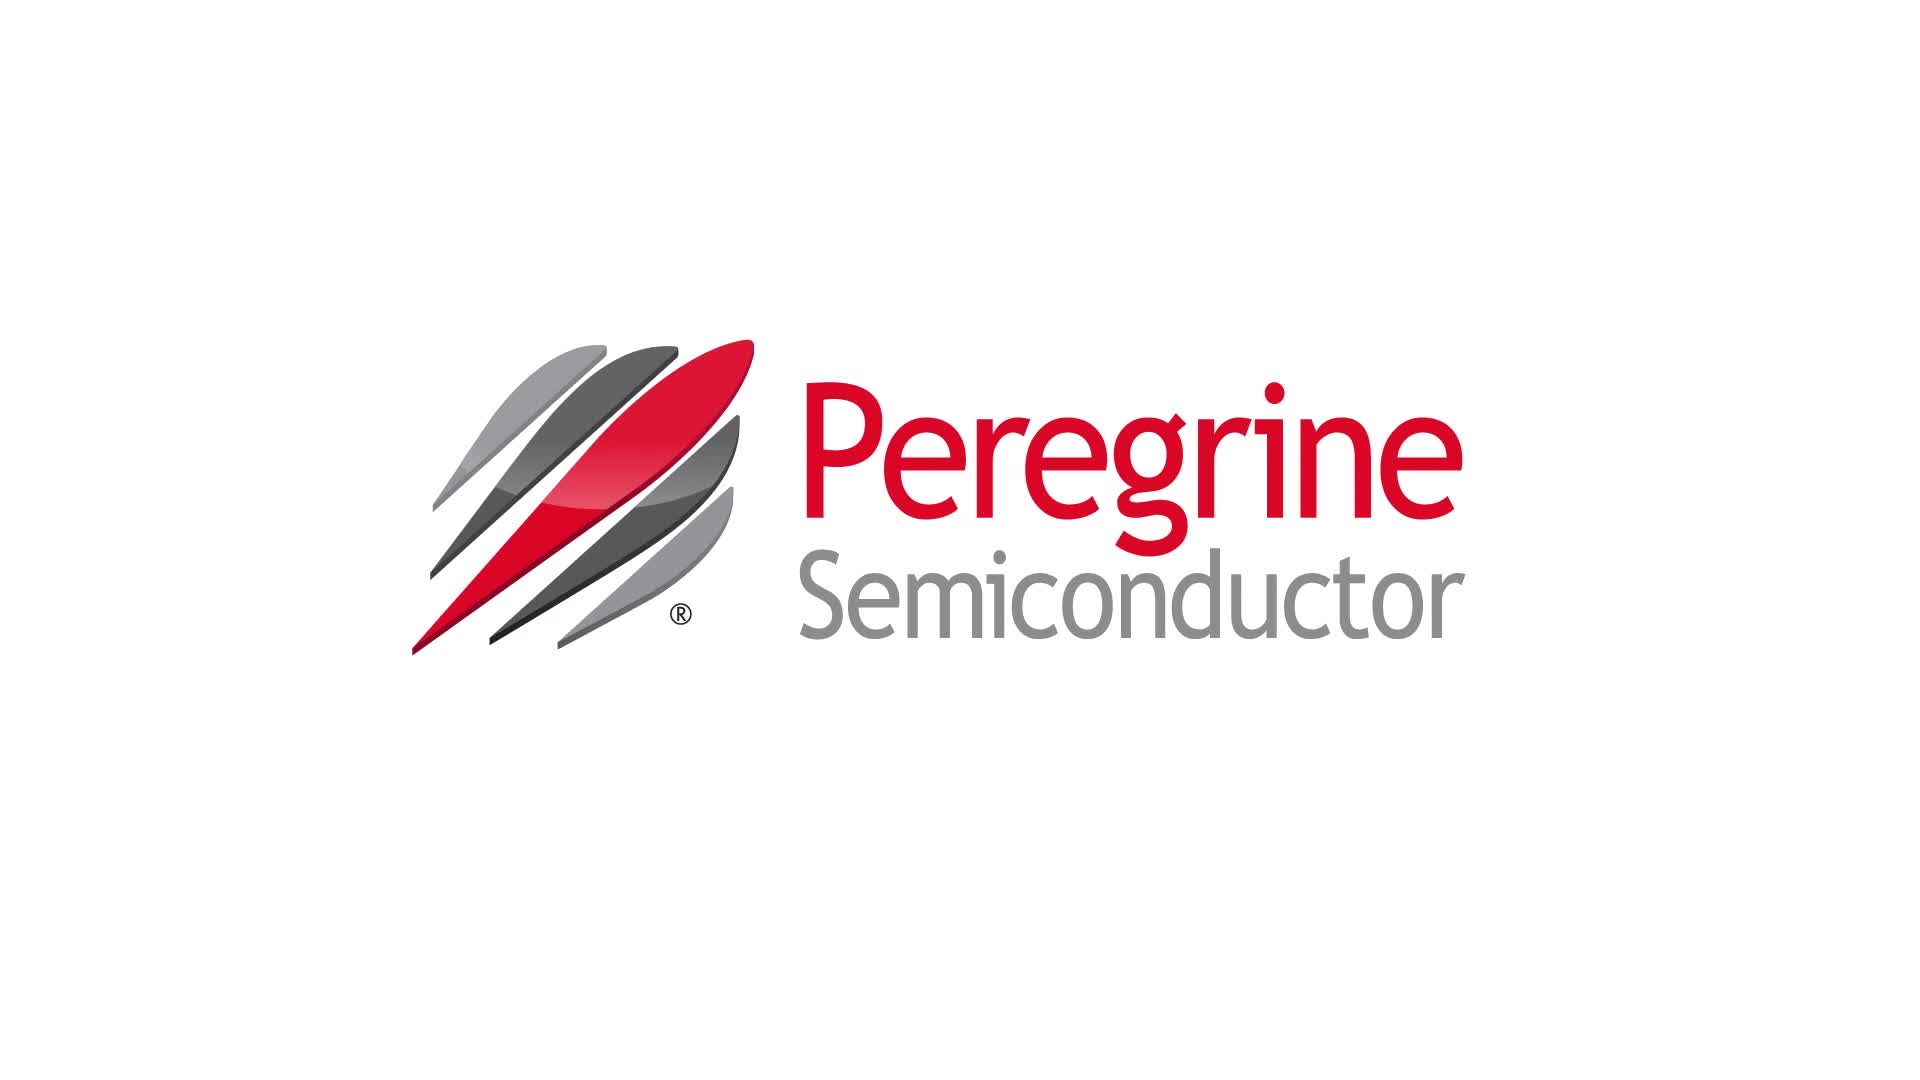 At IMS 2015, Peregrine Semiconductor announces availability of the first product from the MPAC family, the UltraCMOS(R) PE46120.